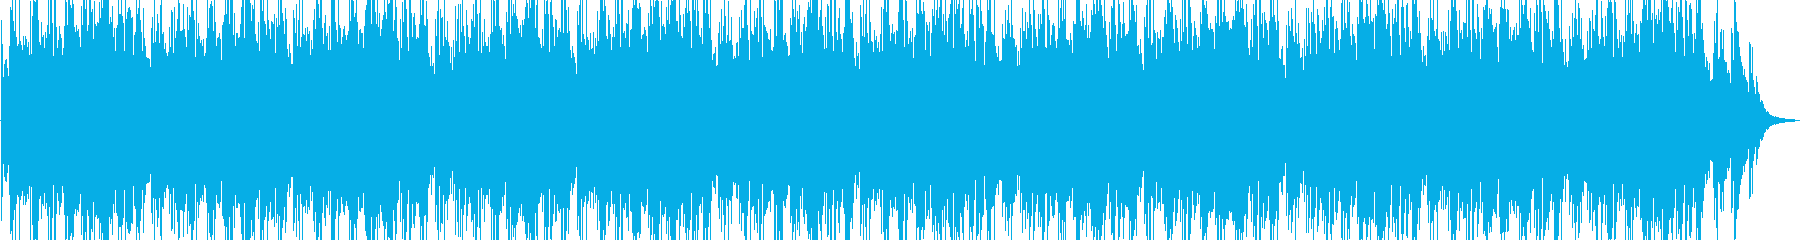 Magnificent _ For the beating atmosphere of nature, aerial videos, etc.'s reproduced waveform